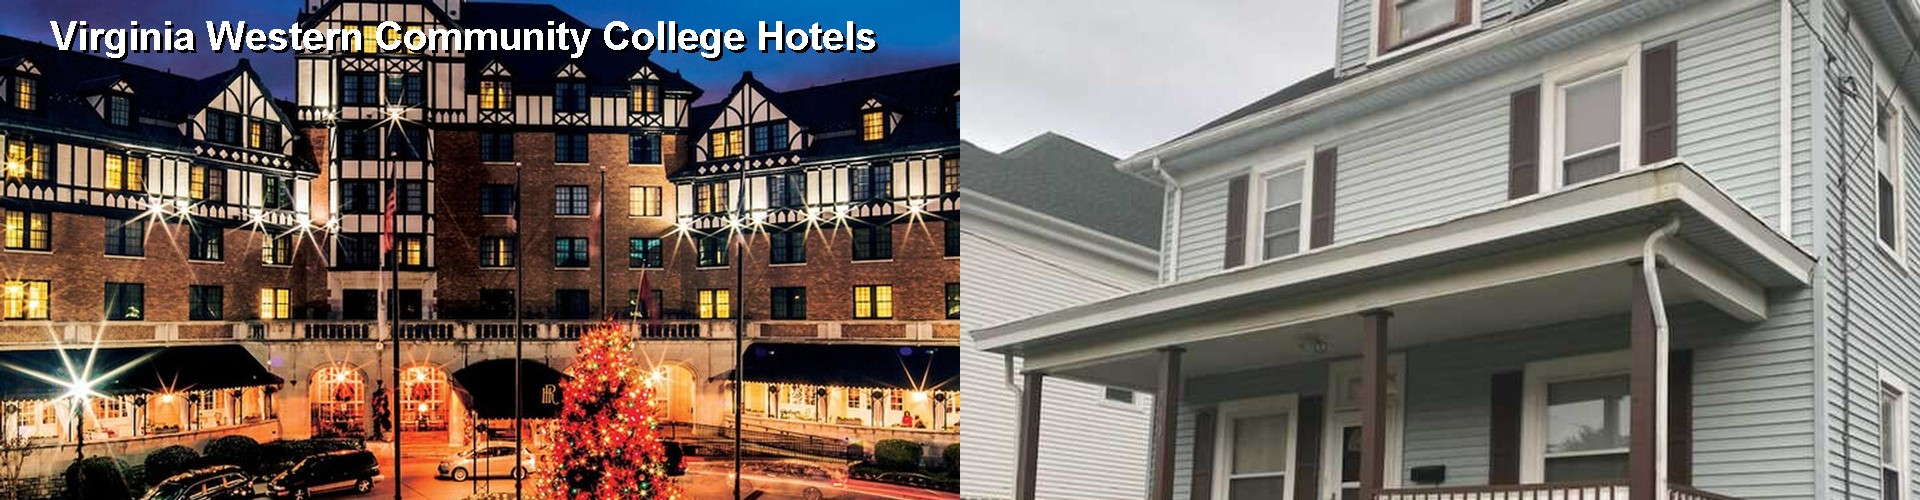 5 Best Hotels near Virginia Western Community College